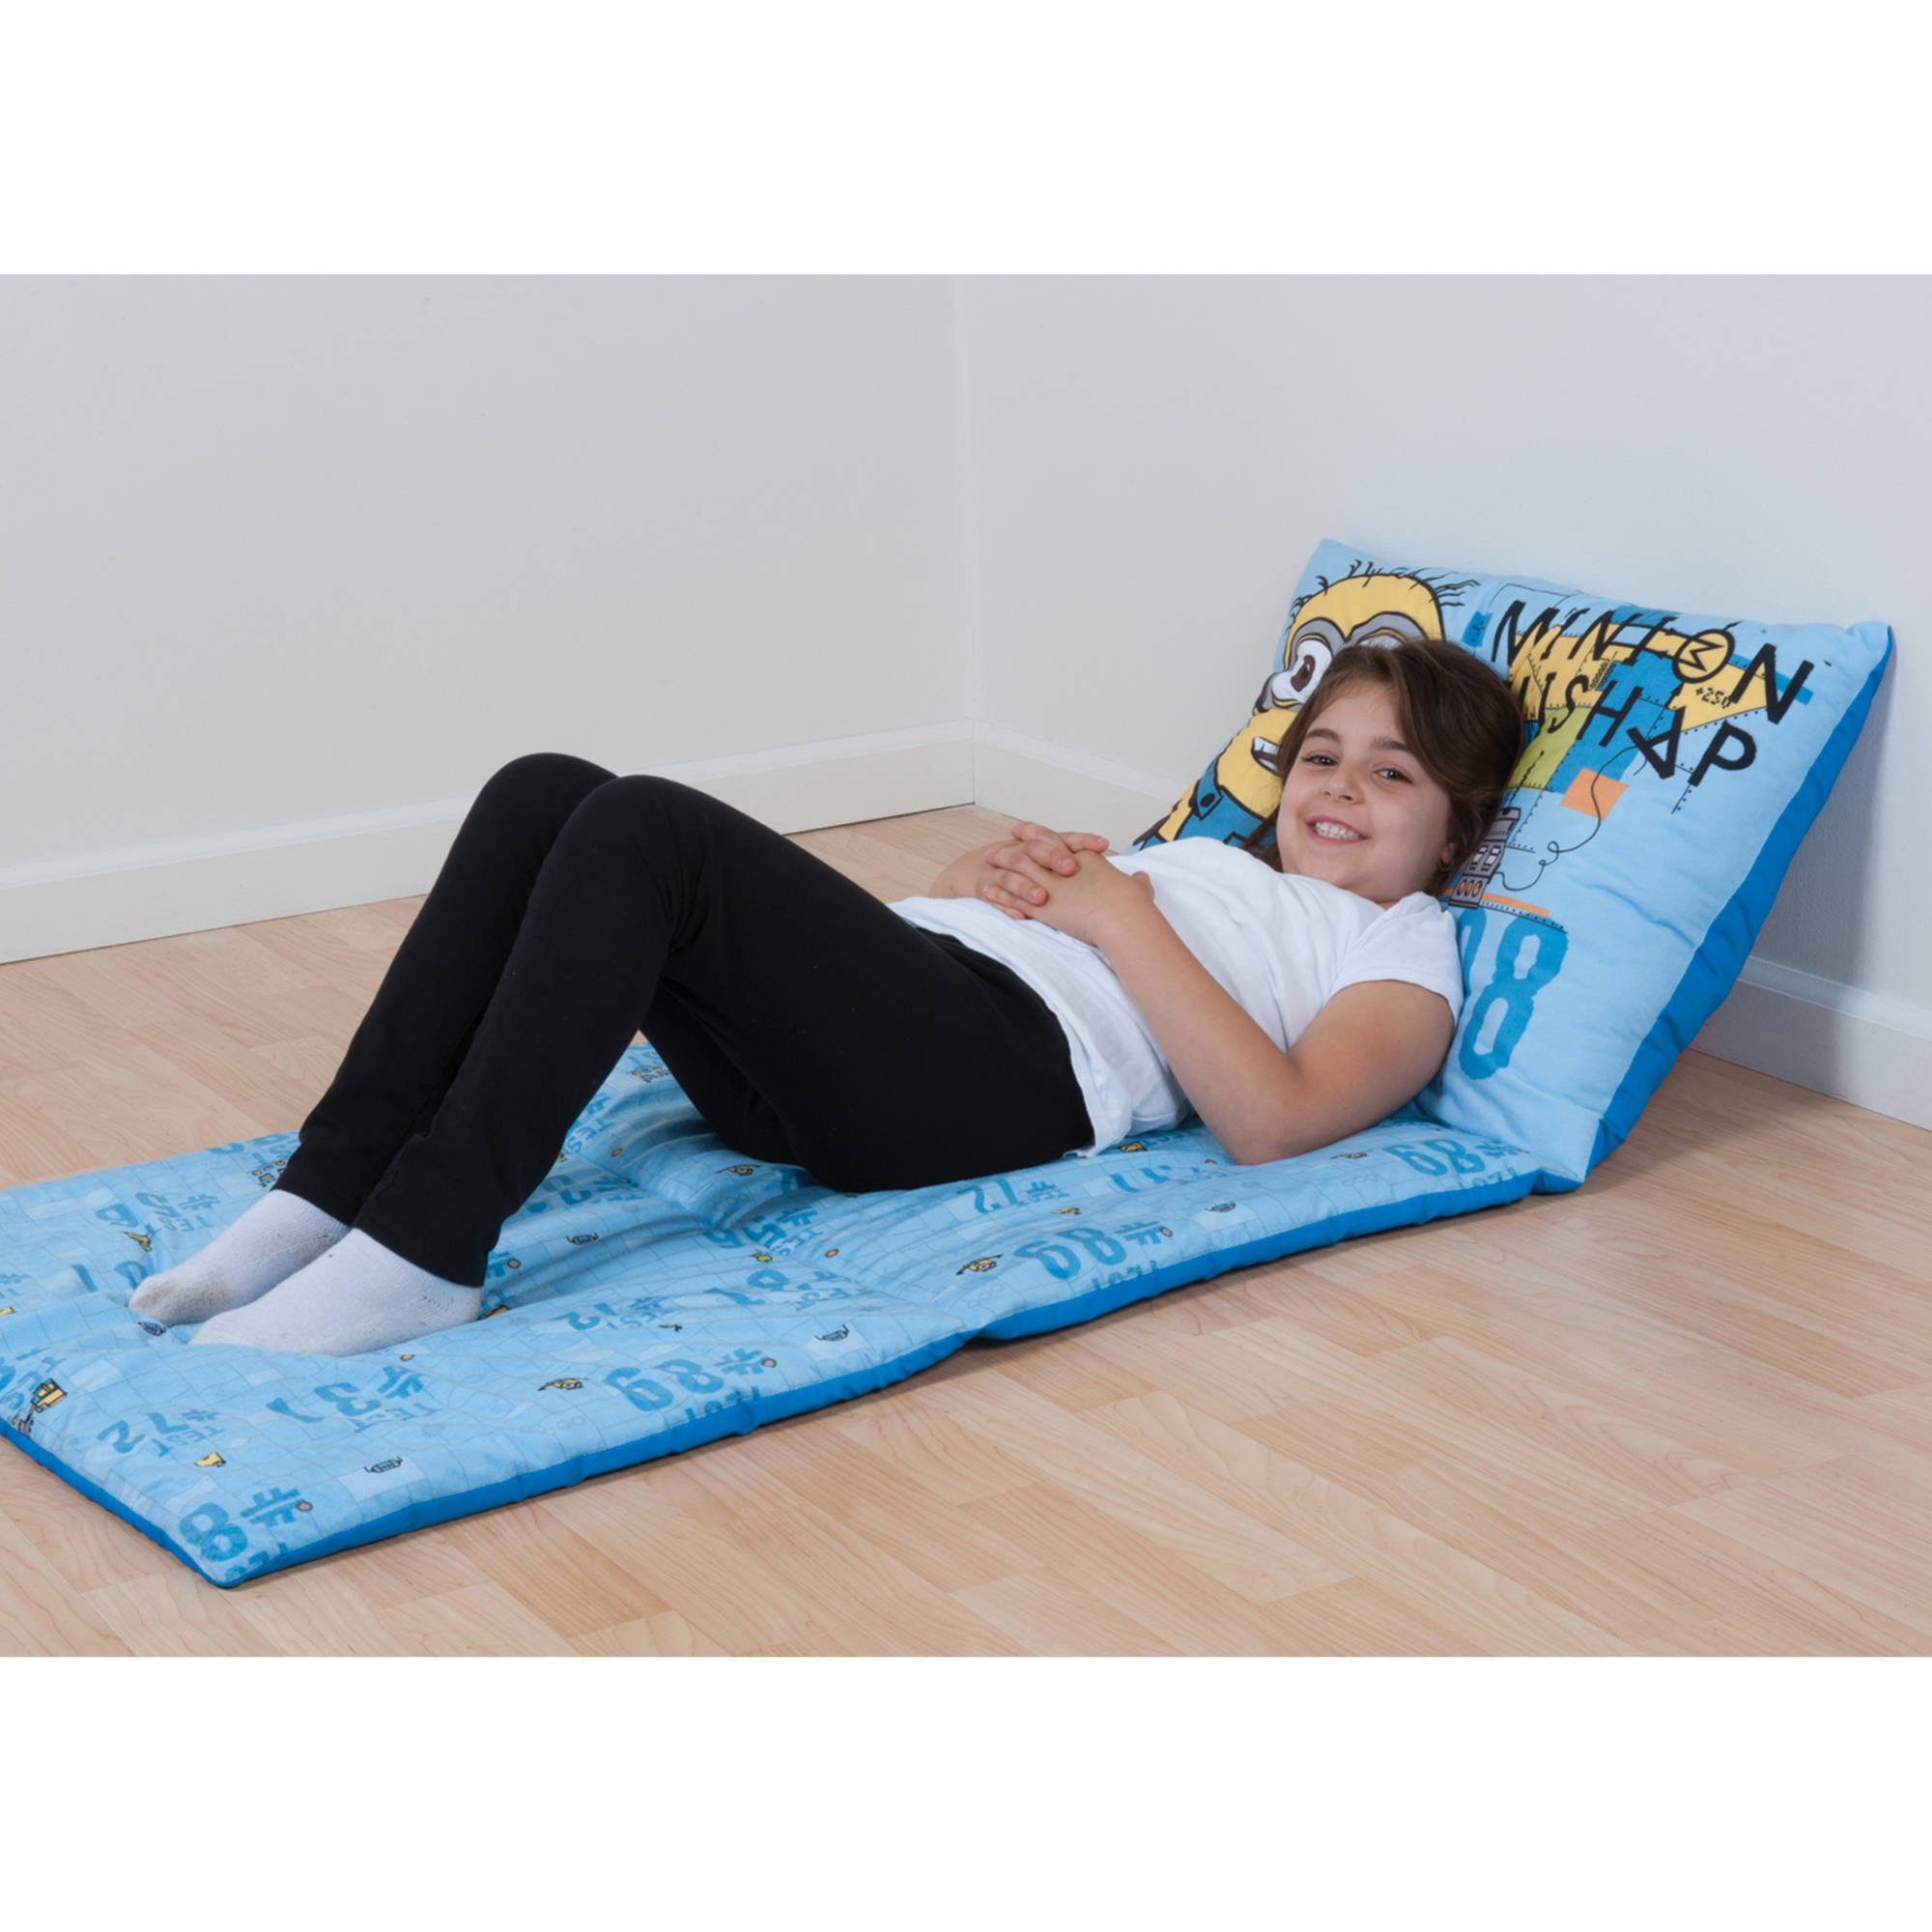 Despicable Me Minions Lounging Tom Pillow Lounger